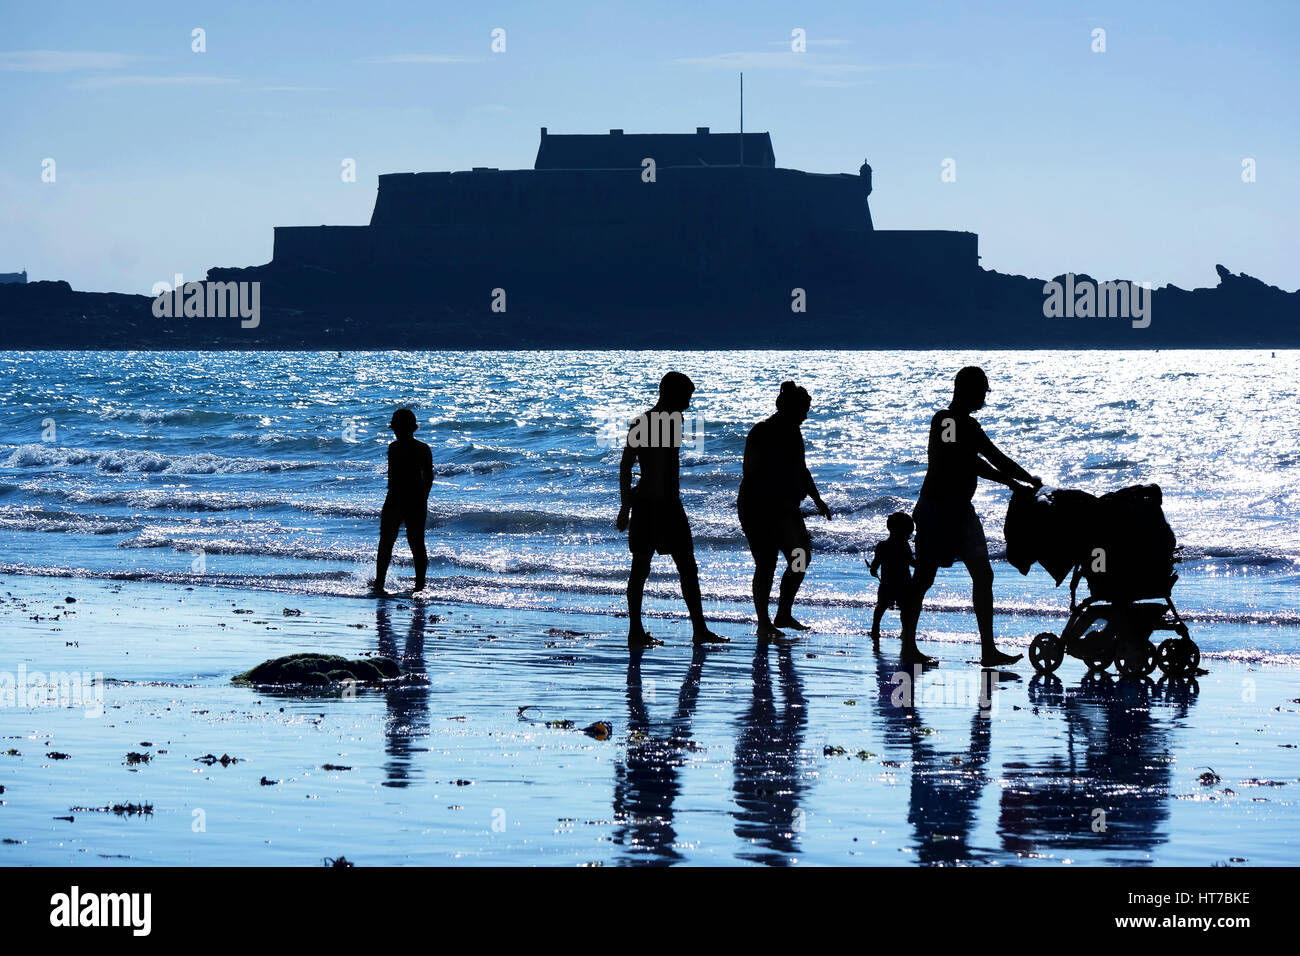 Silhouettes of a family at St. Malo beach walking along the sea at dusk. In the background the contours of Fort - Stock Image